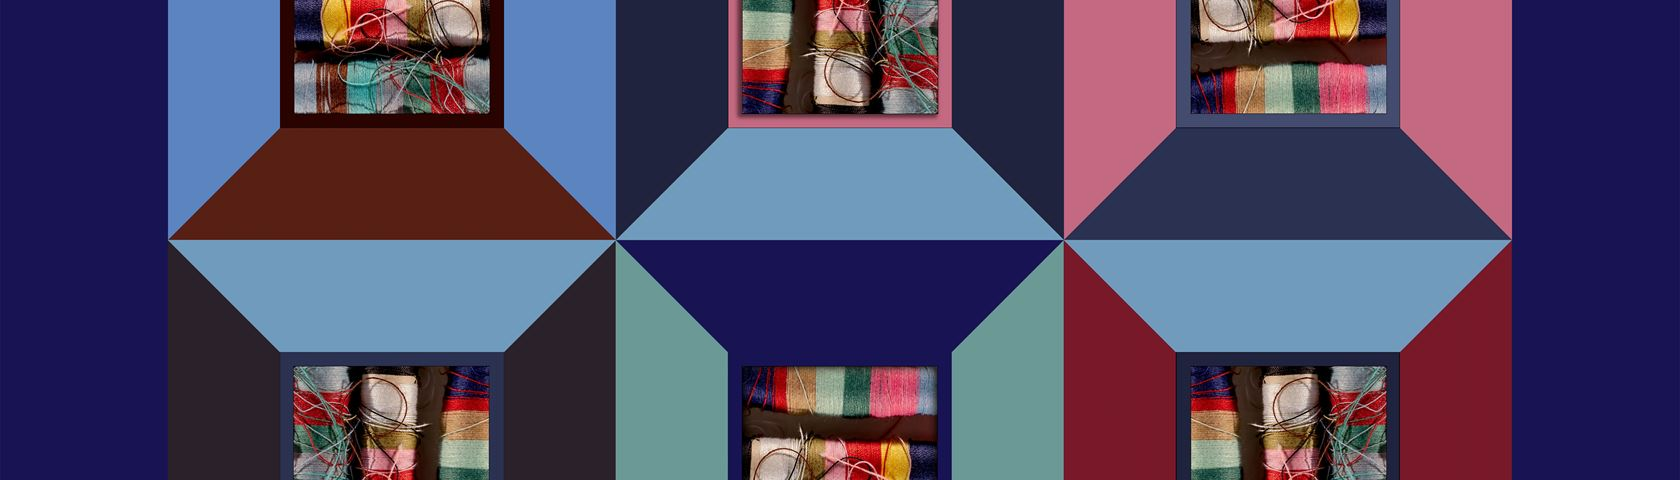 Quilt Design with Colorful Threads